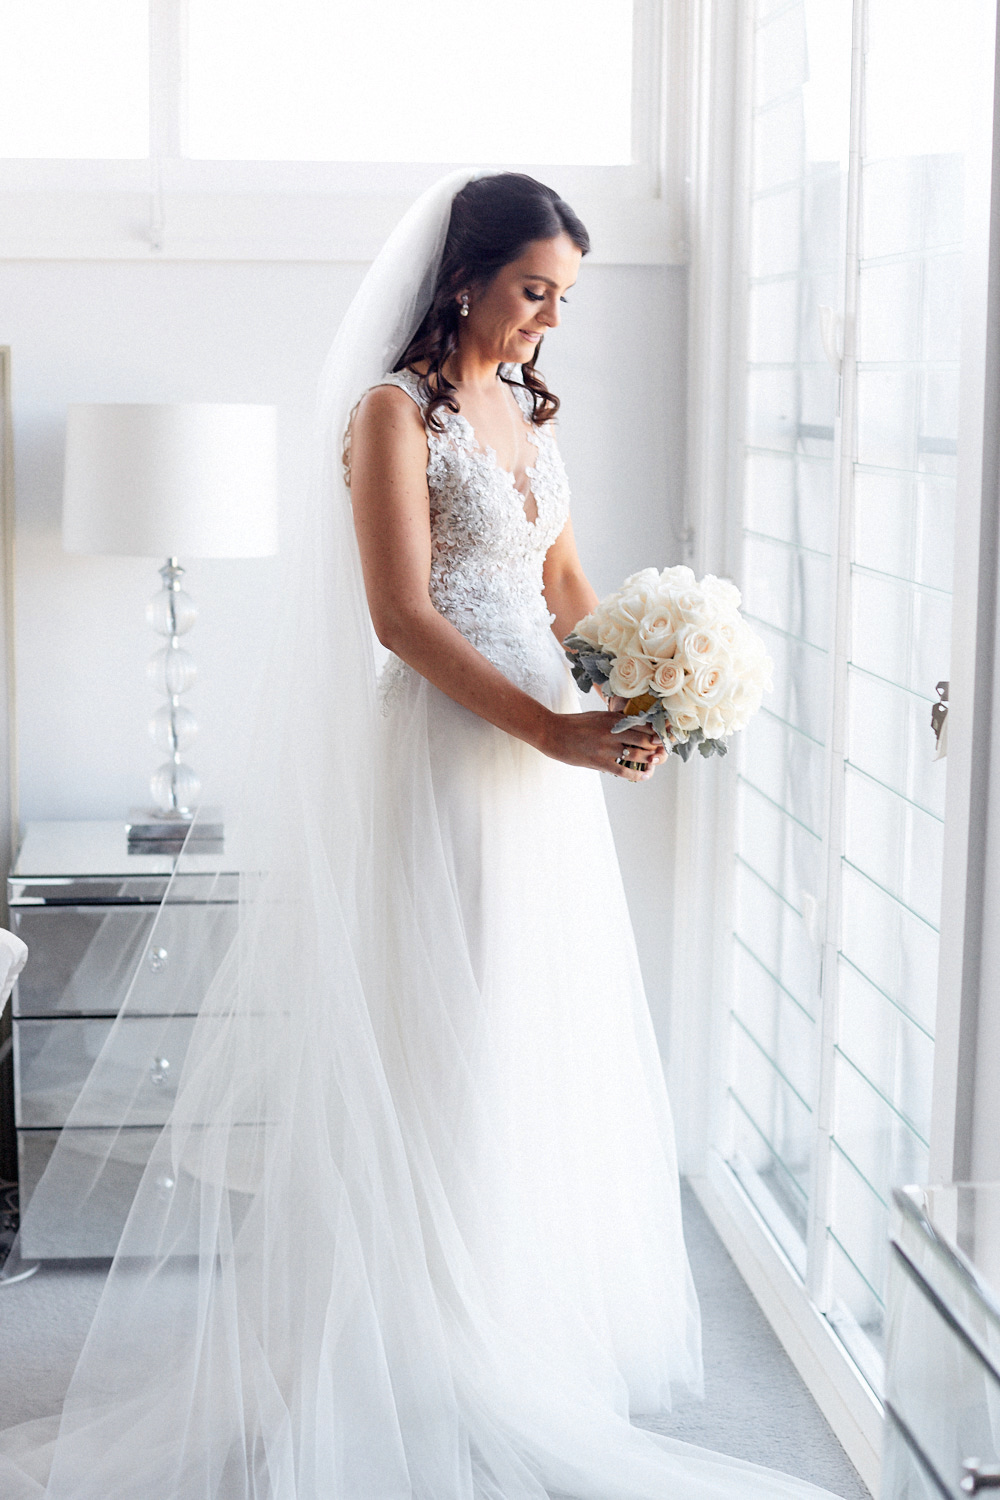 Bride in wedding dress holding and looking at a bouquet of white roses in front of window by Blue Mountains wedding photographer Joshua Witheford